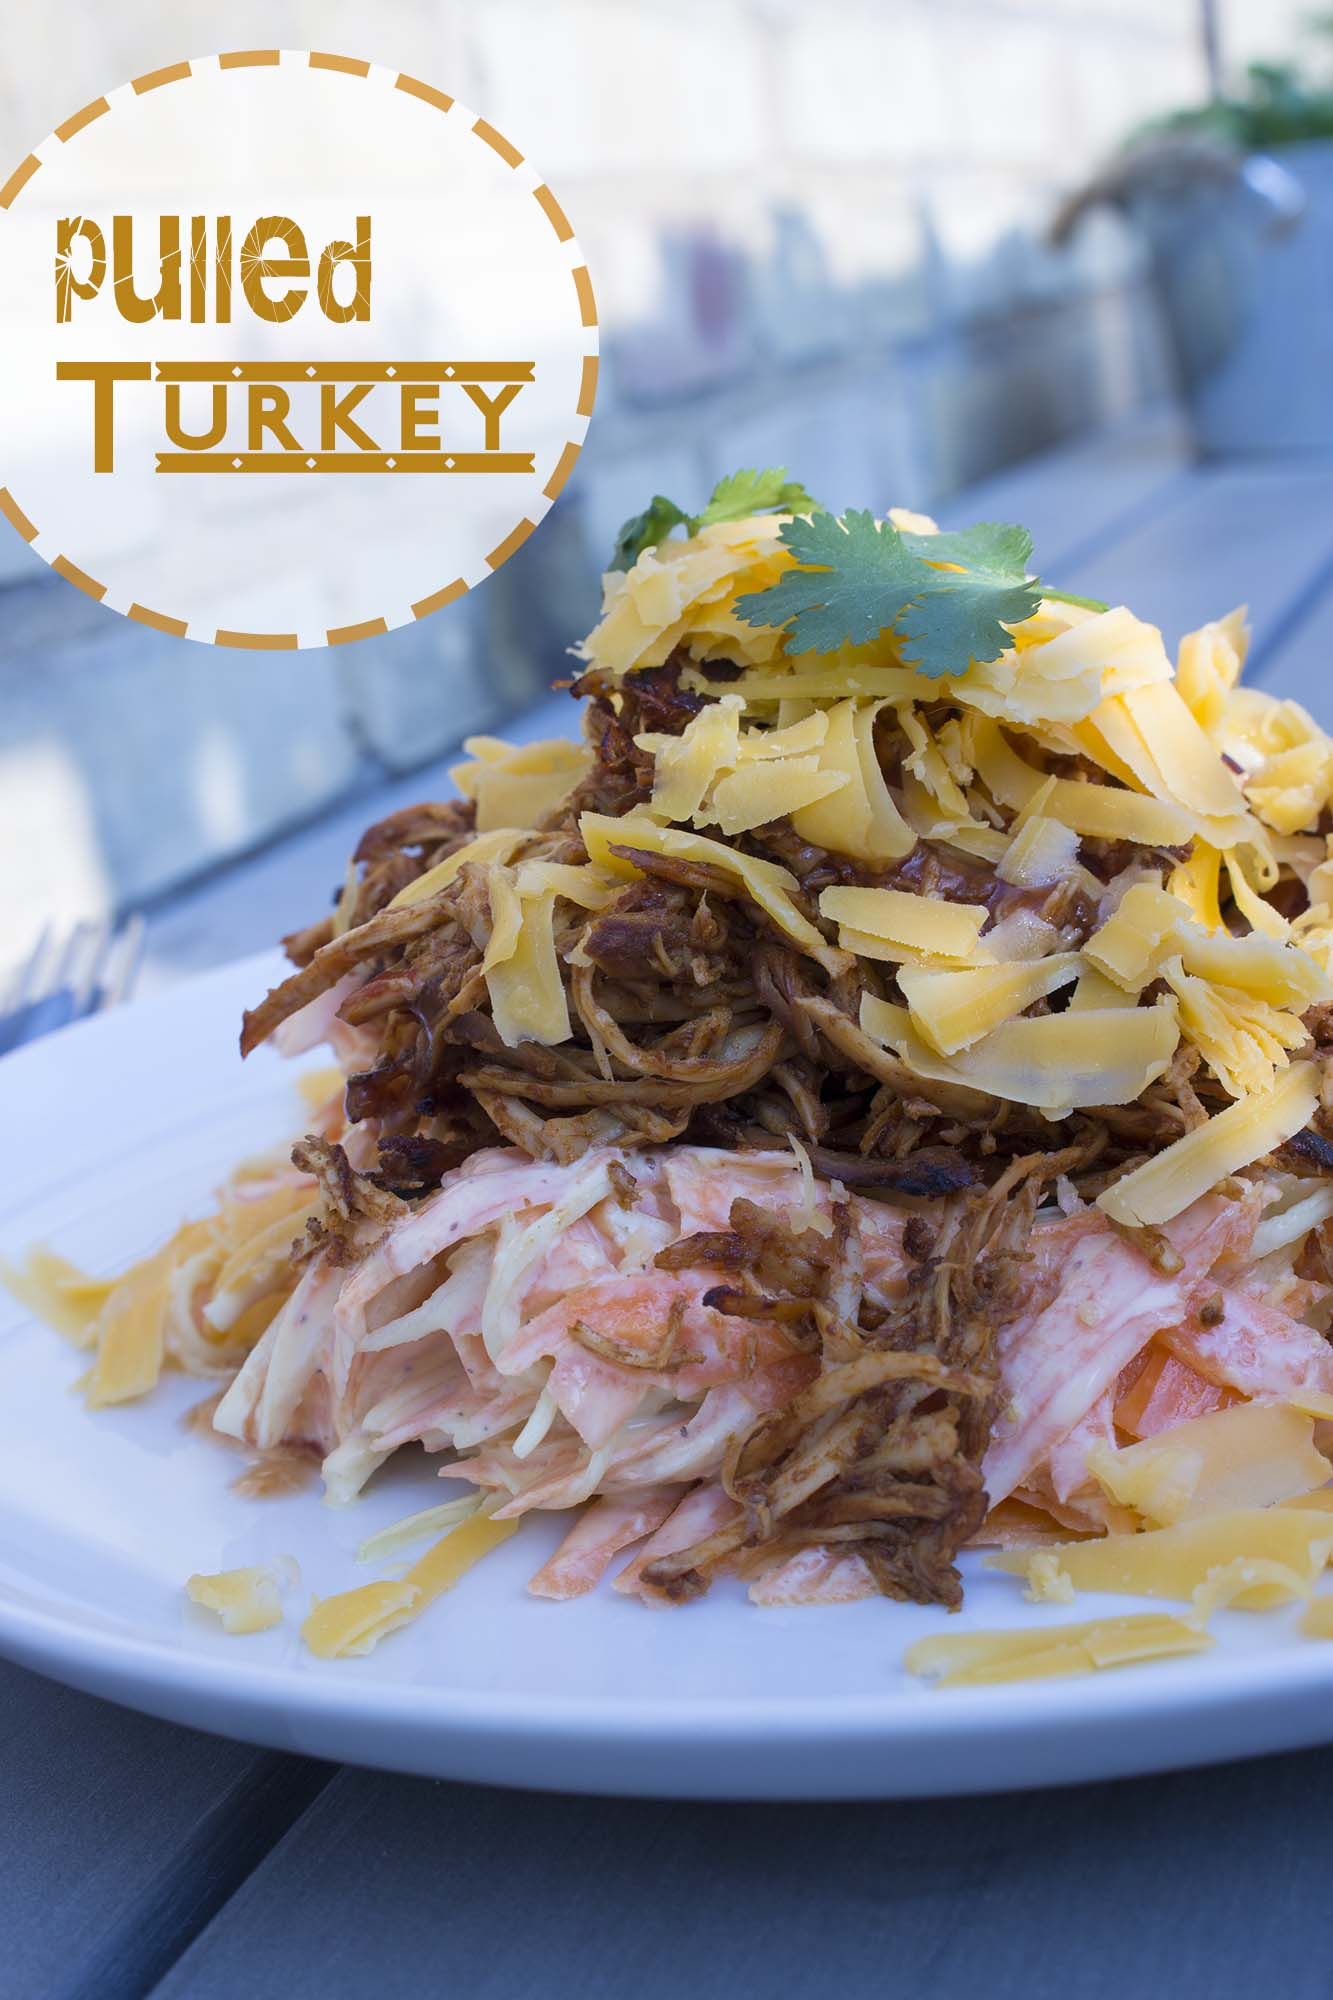 Pulled turkey i crockpot